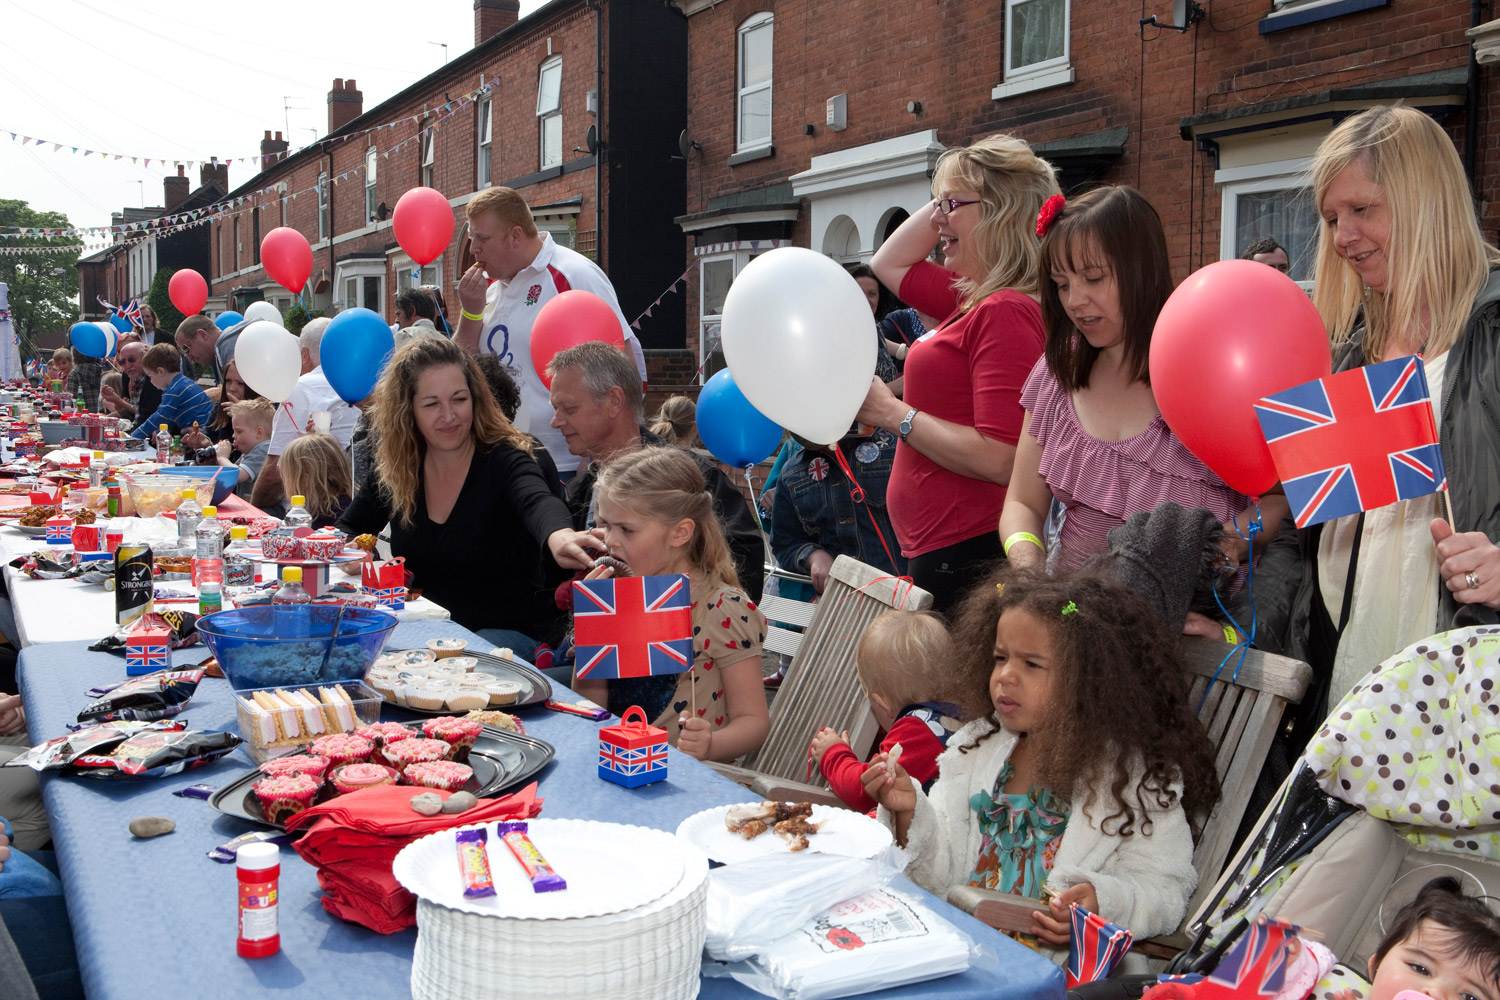 A street party on Westbourne Street in Walsall, England.